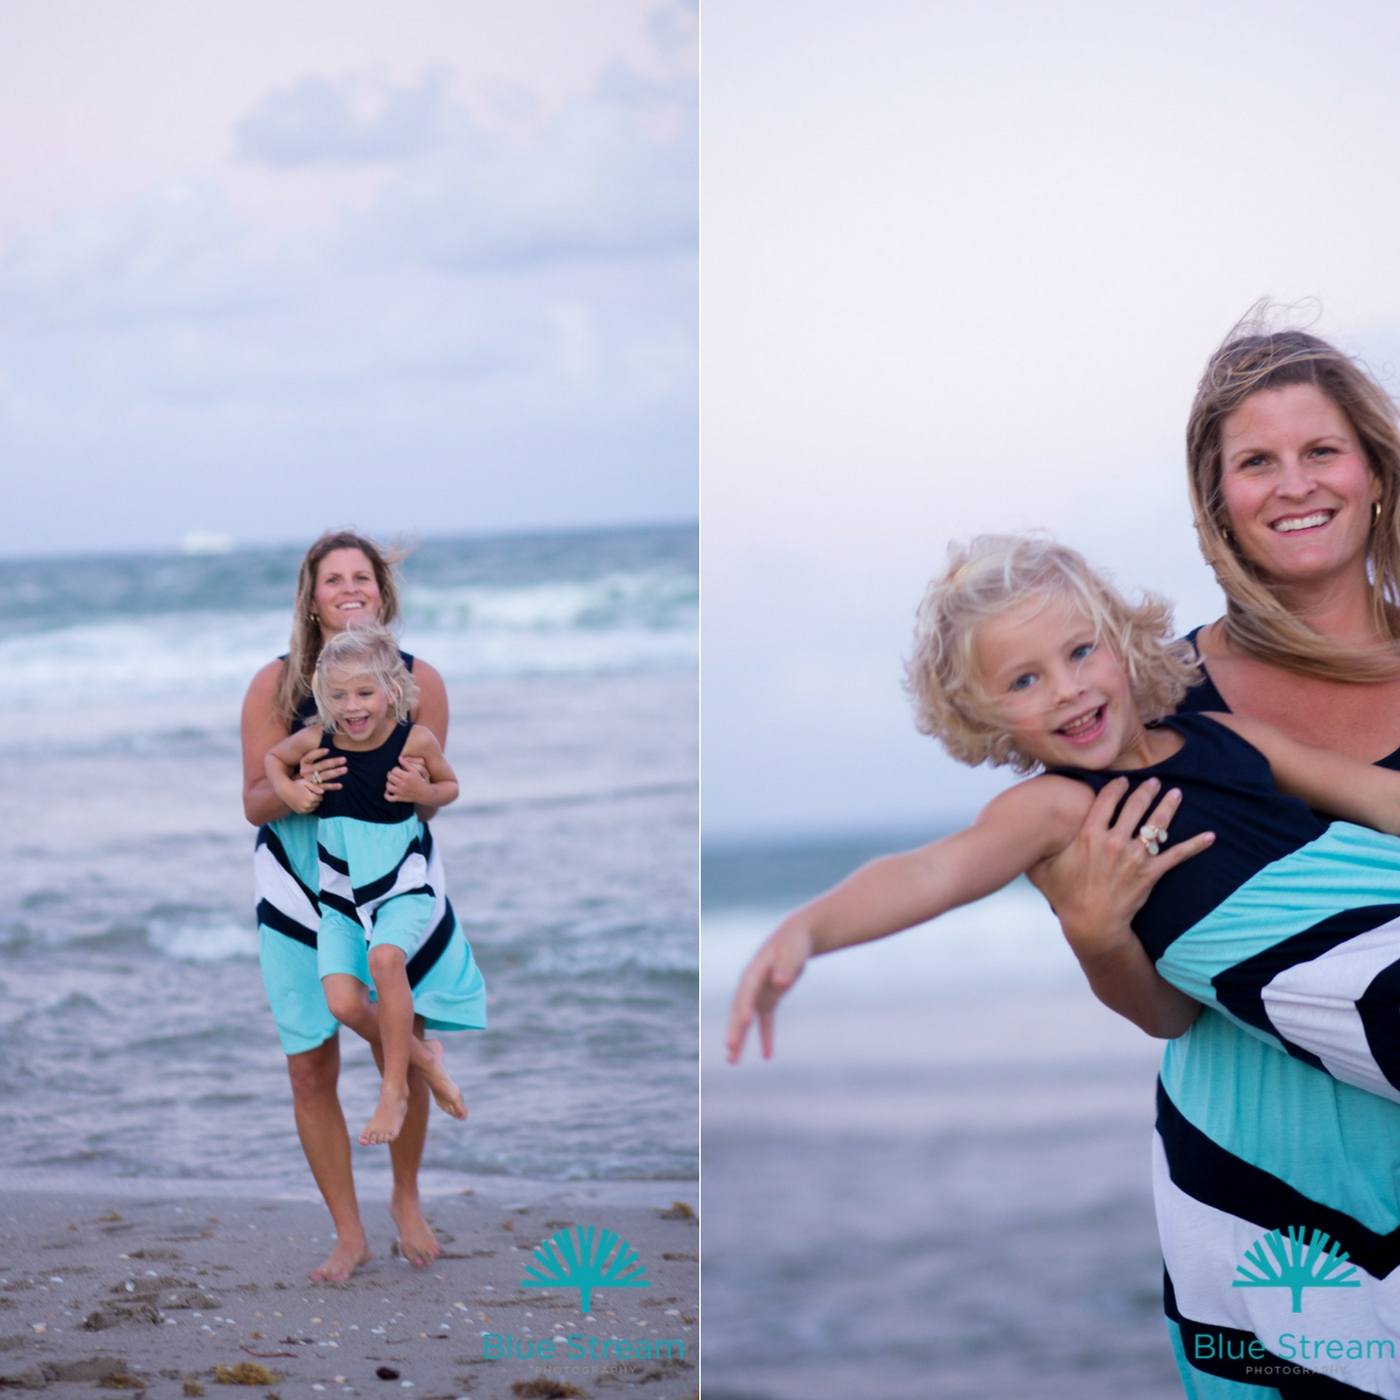 bluestreamphotography_mommydaughter2.jpg